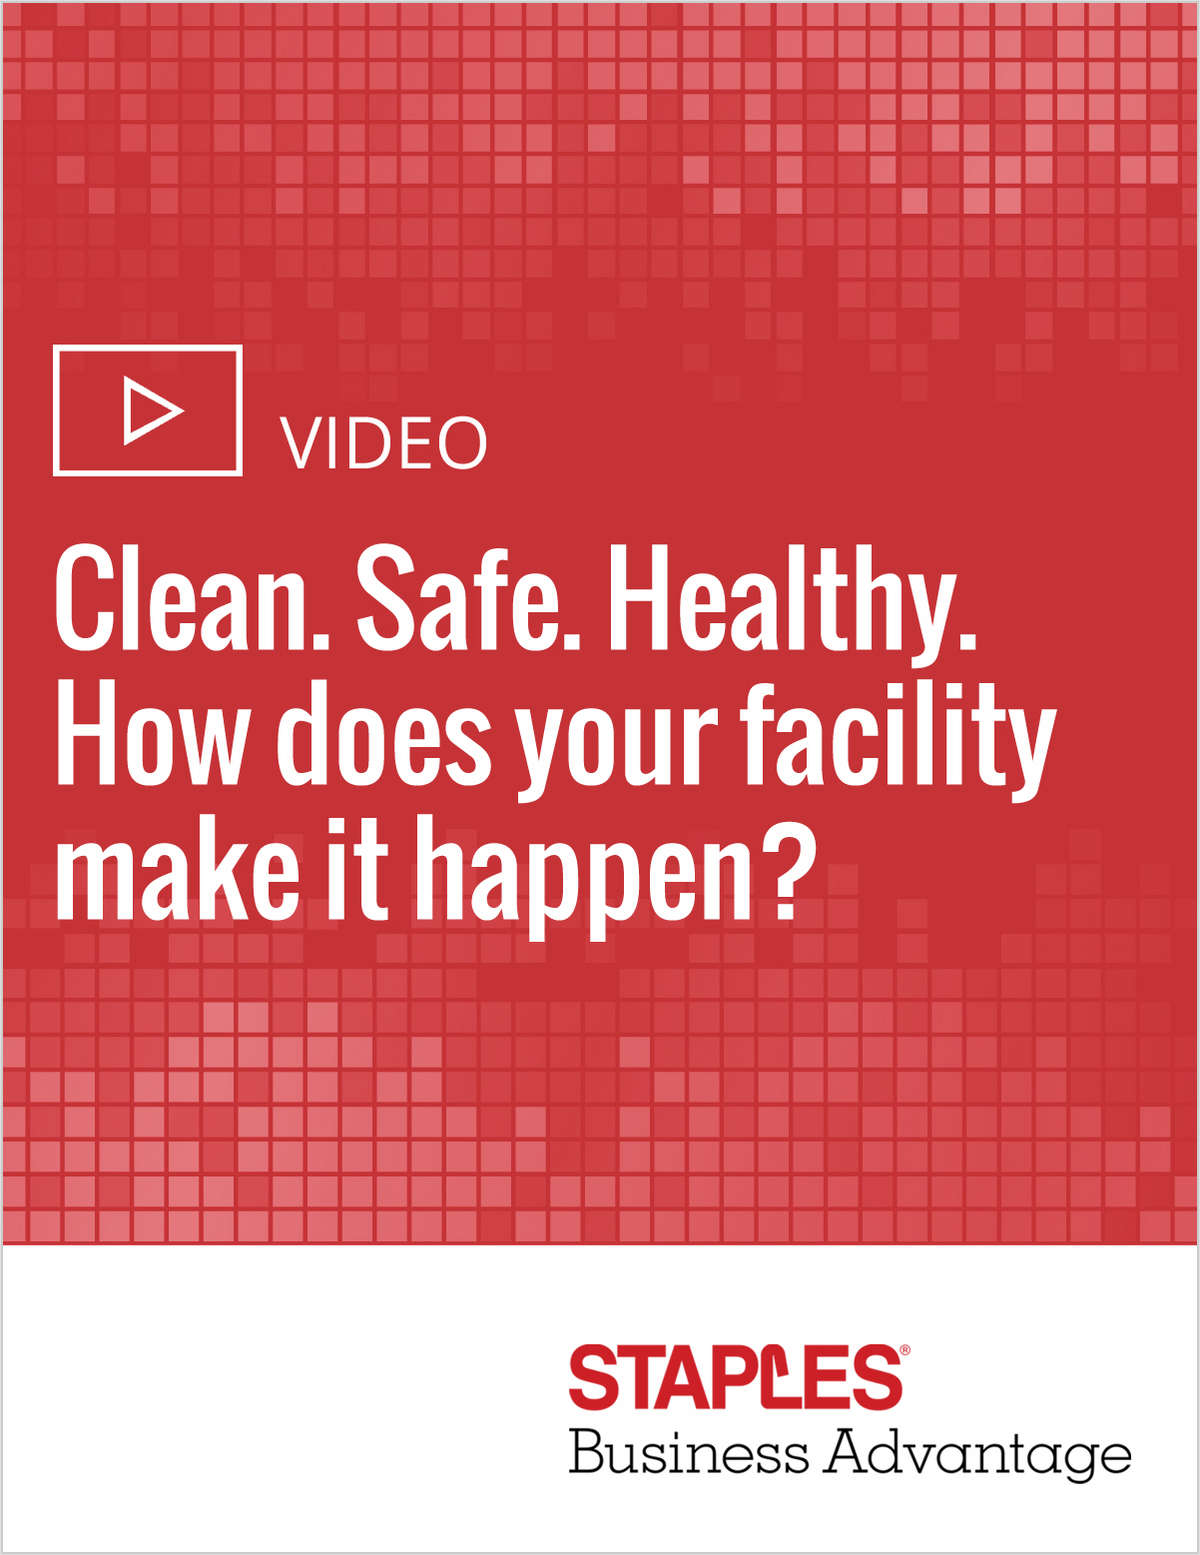 Clean. Safe. Healthy. How does your facility make it happen?